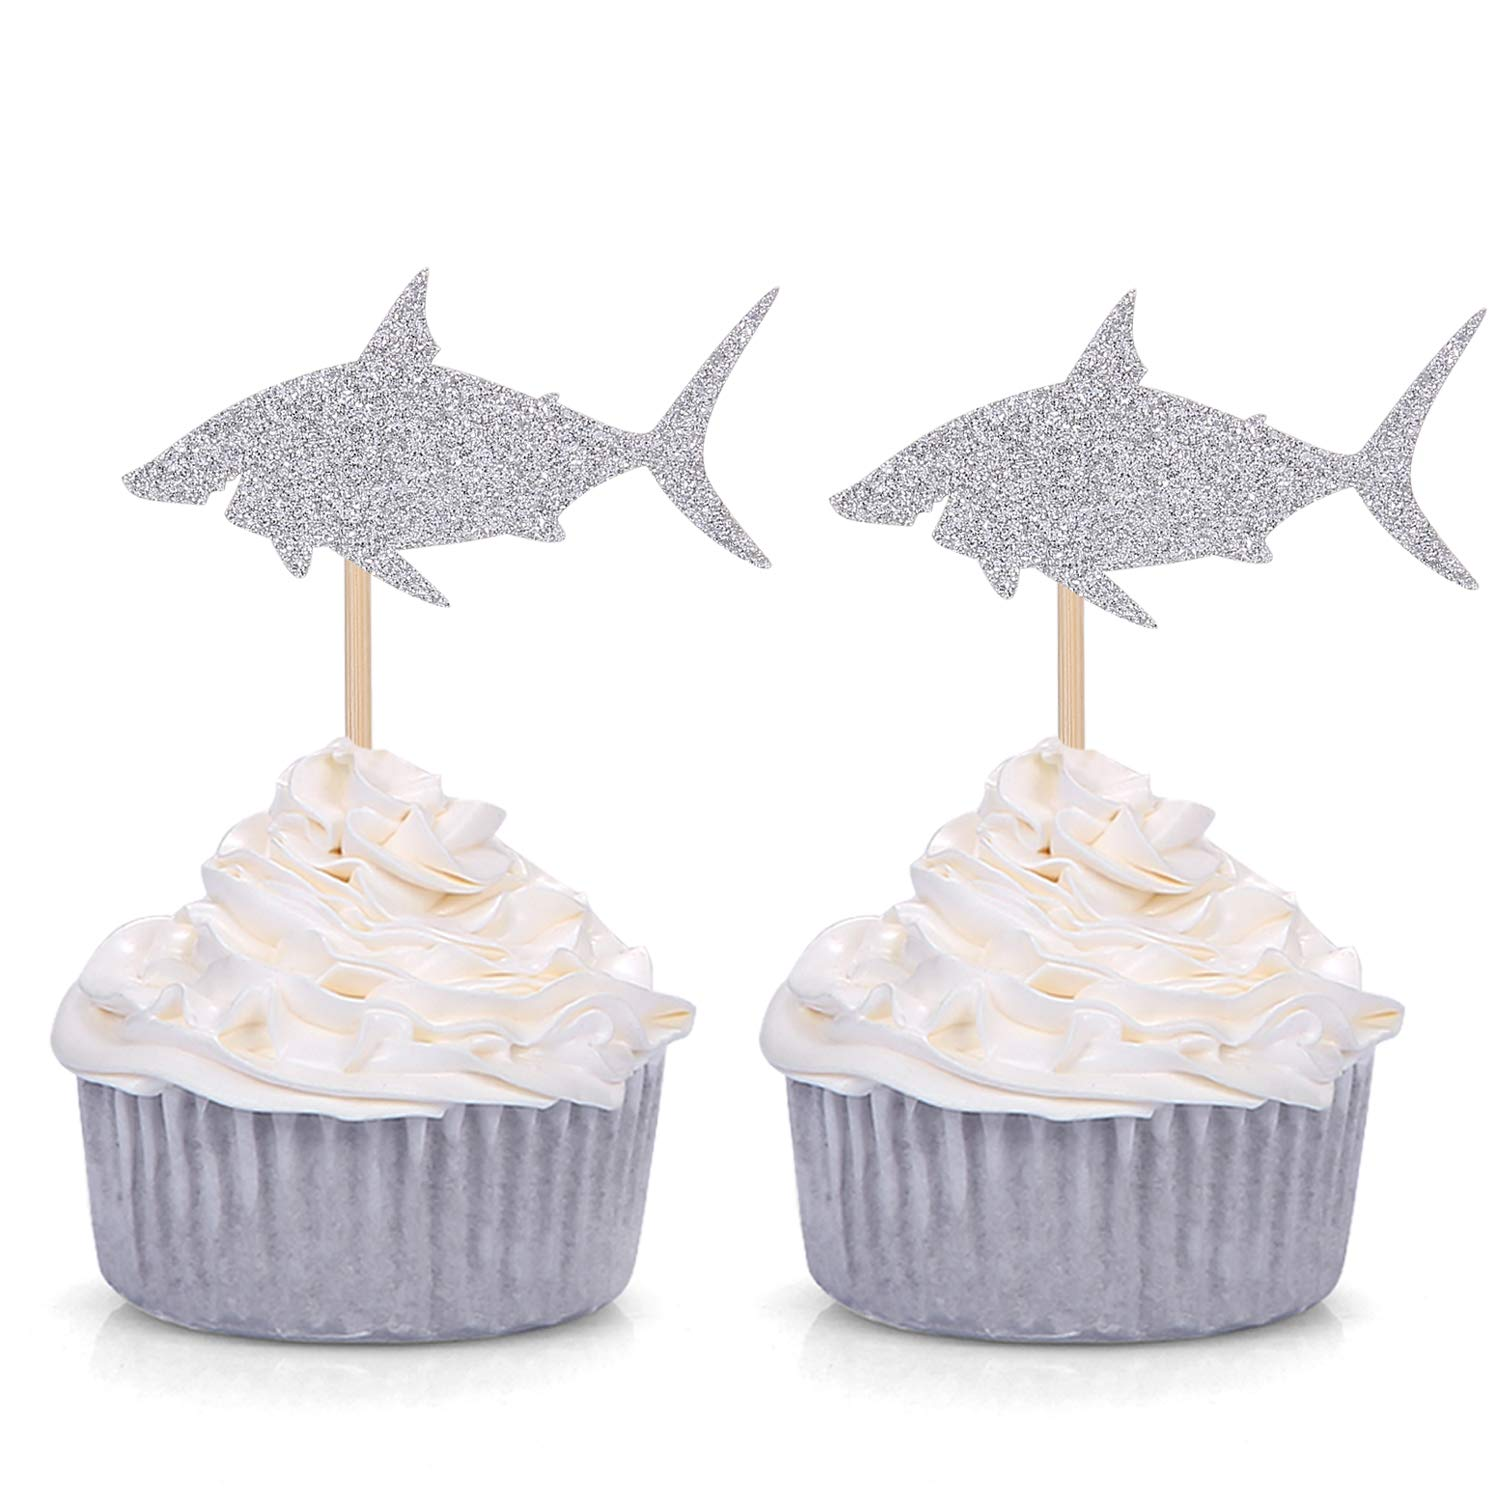 Pack of 24 Silver Shark Cupcake Toppers Boy's Birthday Party Decorations